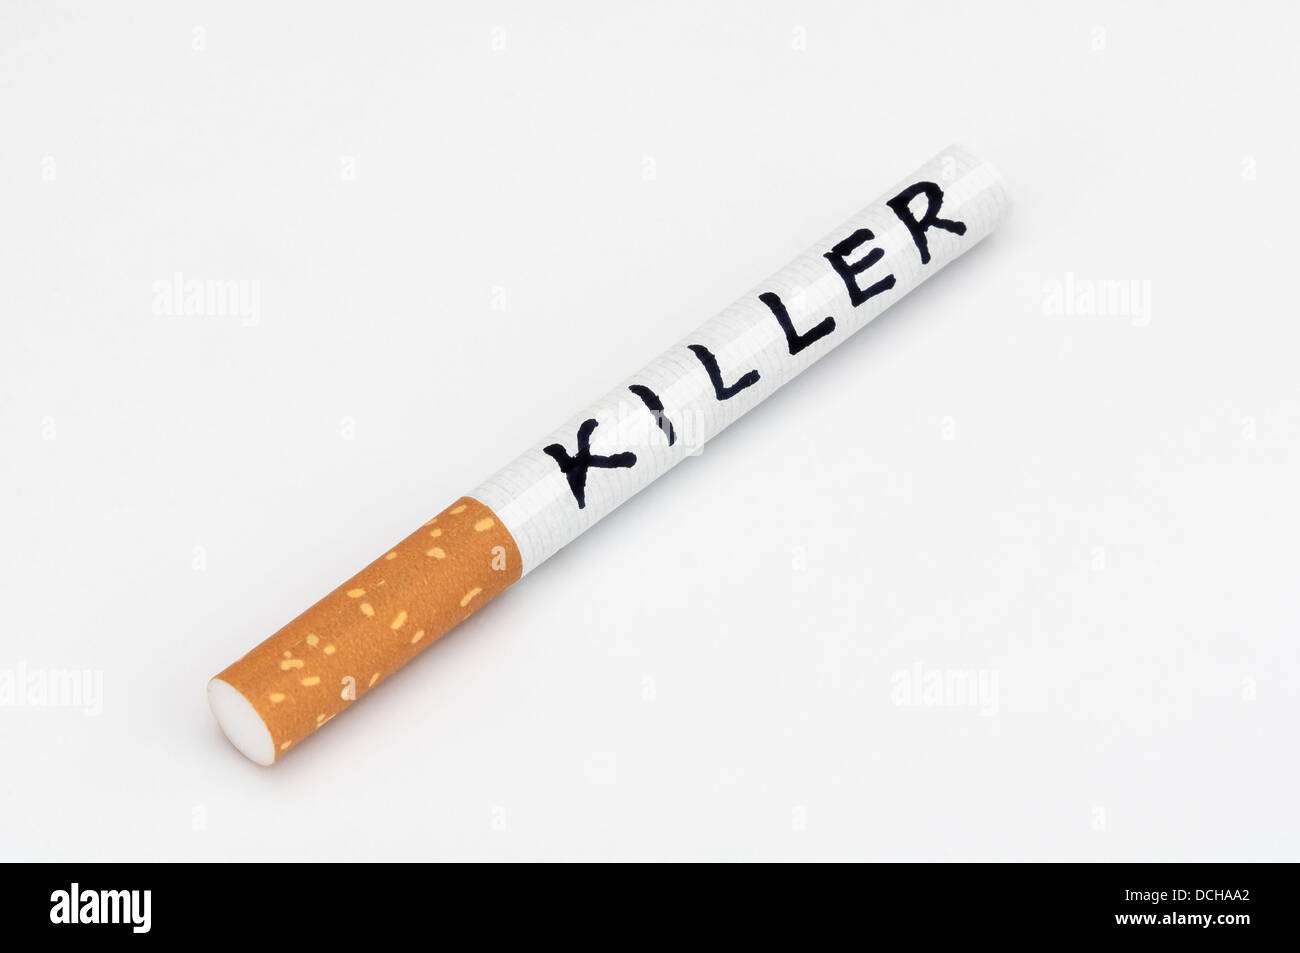 Smoking kills cigarette killer addiction - Stock Image